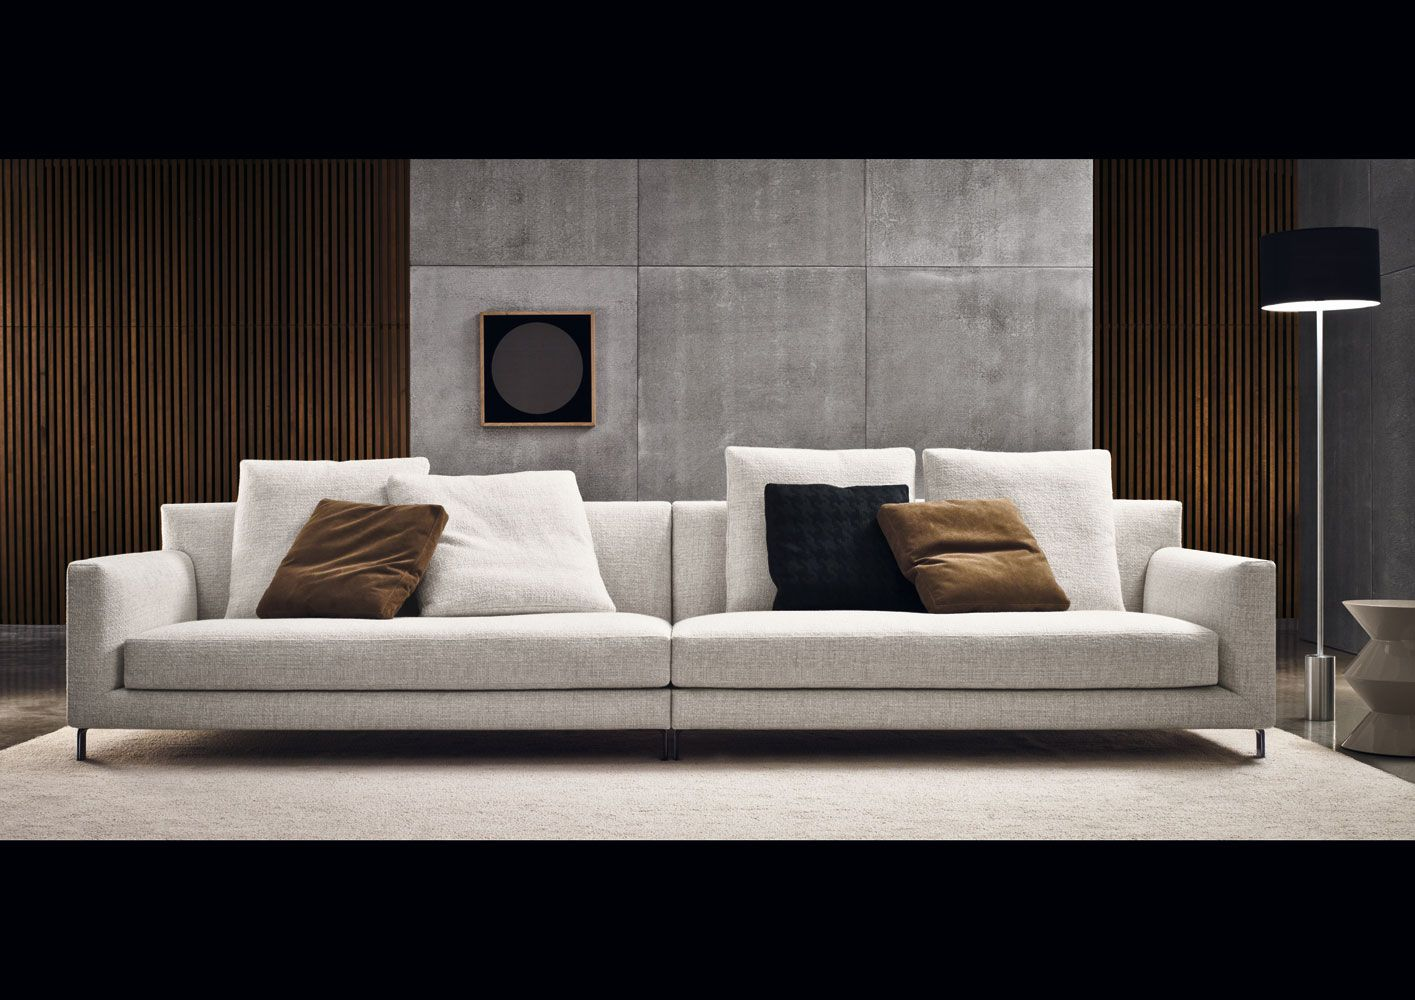 Allen Sofa Designed By Rodolfo Dordoni Manufactured By Minotti Switch Modern Http Www: sofa minotti preise